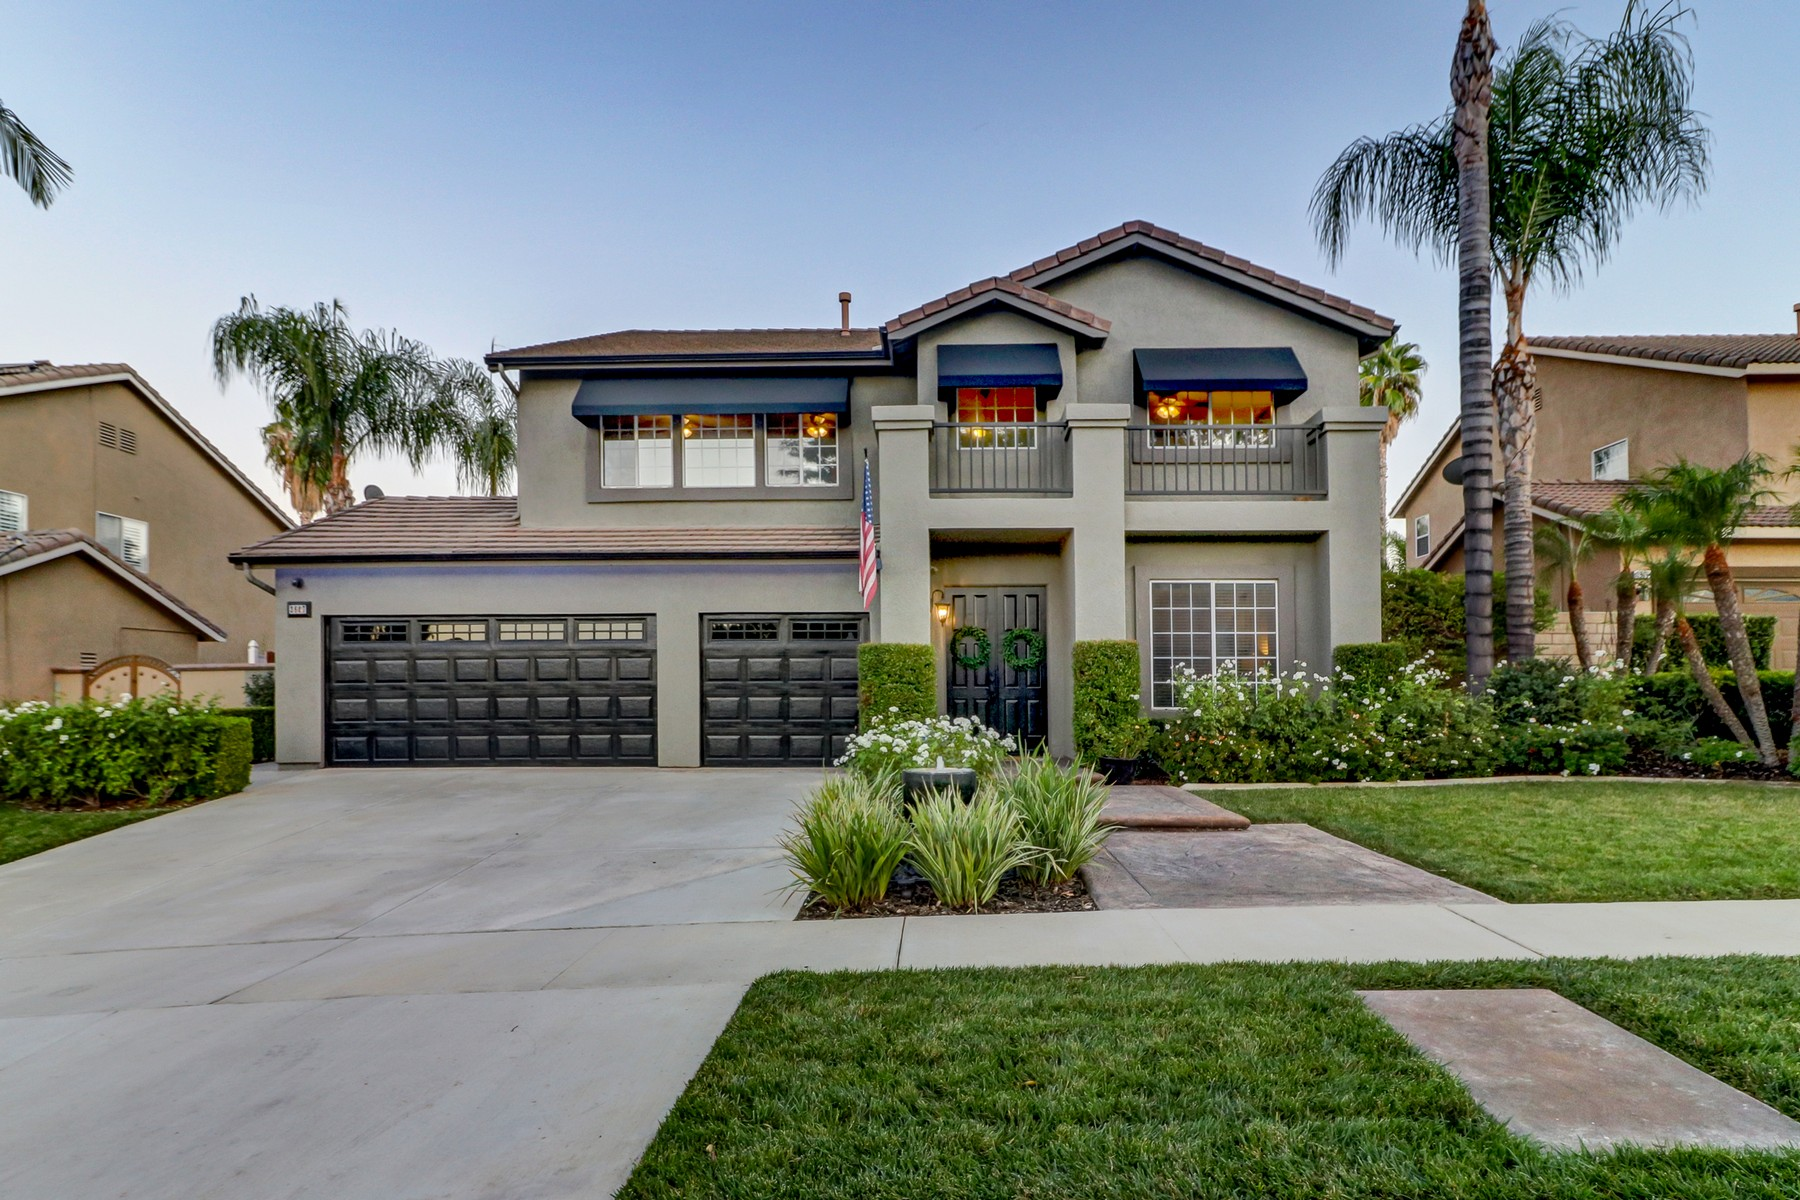 Single Family Homes for Sale at 3607 Summertree Lane, Corona, CA 92881 3607 Summertree Lane Corona, California 92881 United States